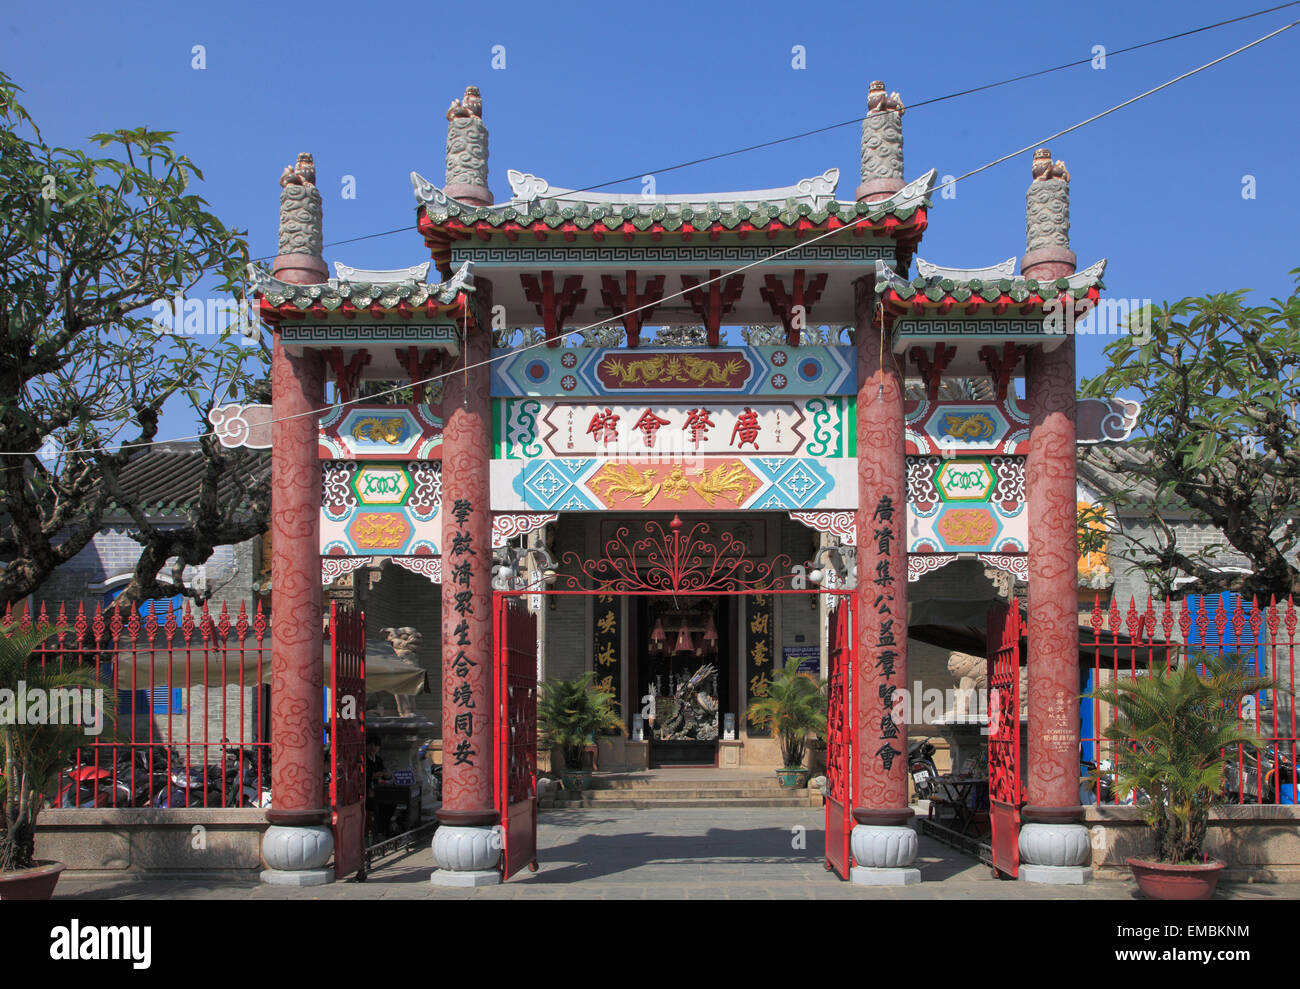 Vietnam, Hoi An, Cantonese Assembly Hall, - Stock Image